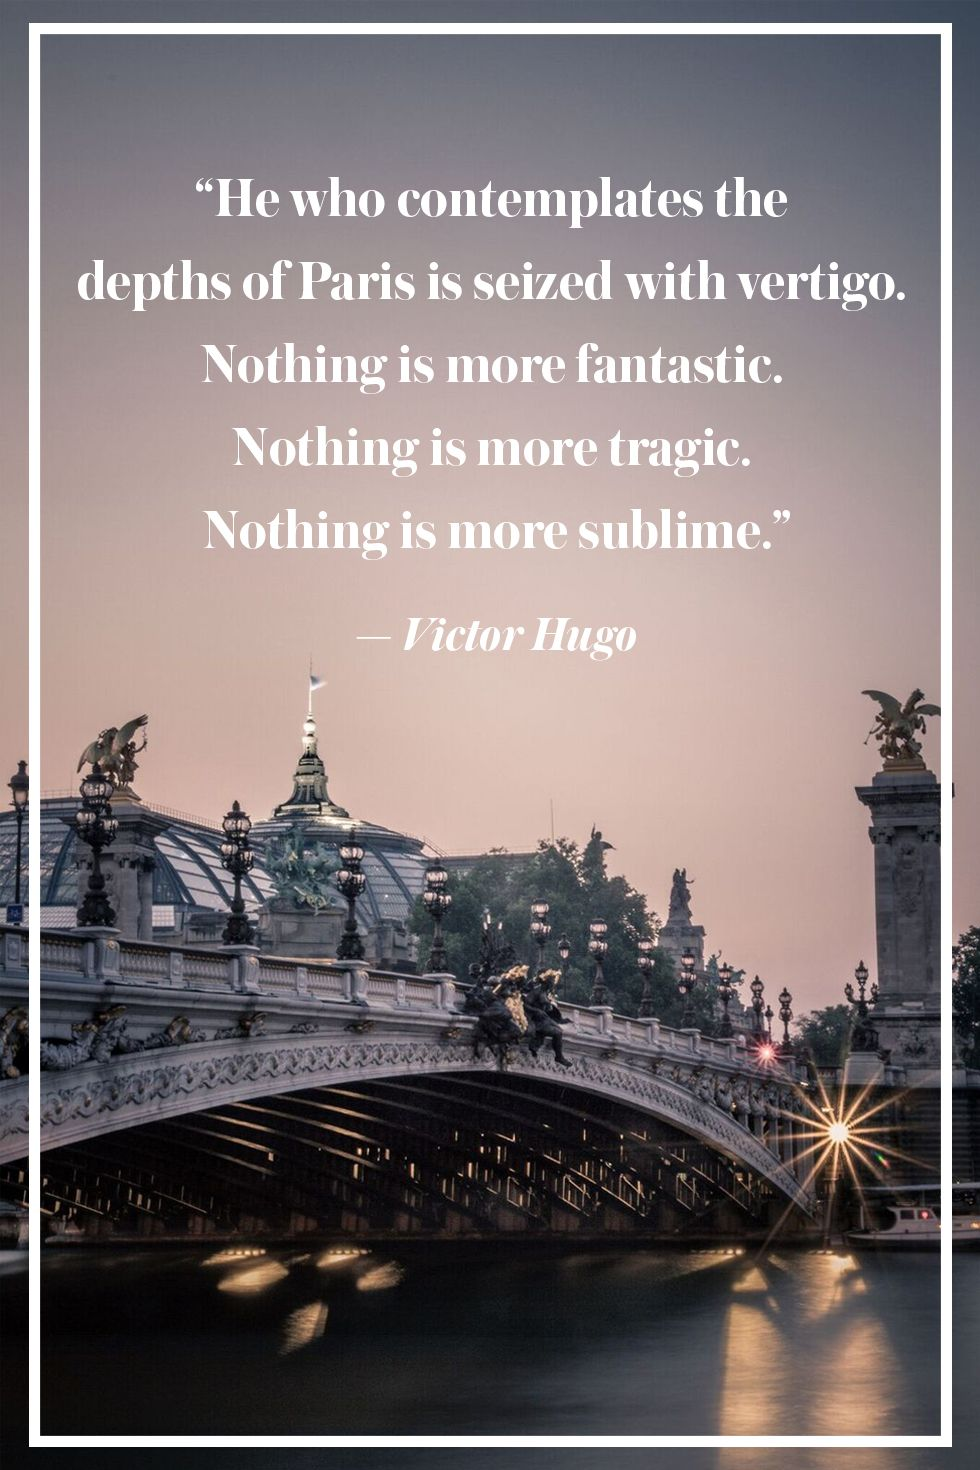 Paris Quotes Our Favorite Quotes about France and Paris | Paris. | Paris quotes  Paris Quotes